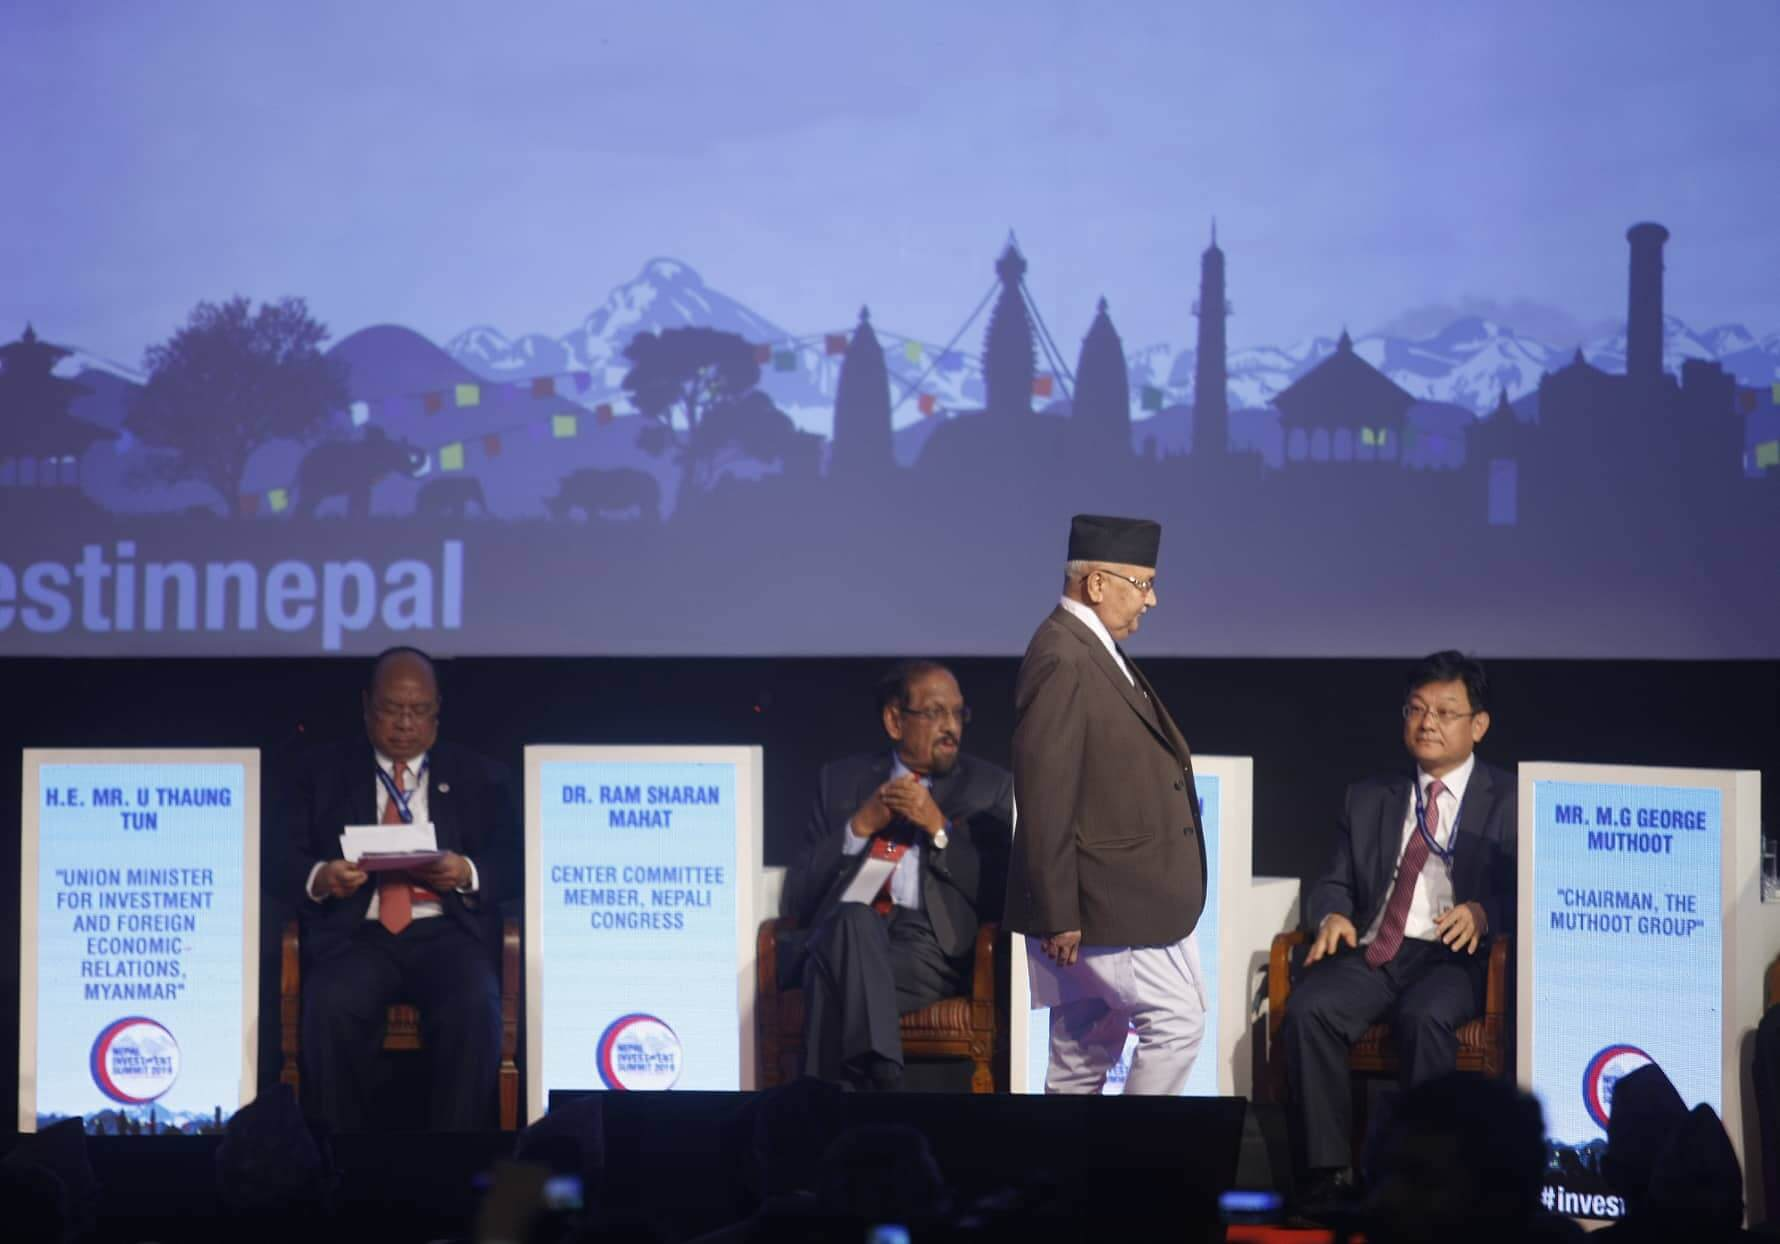 Nepal has to curb corruption before wooing investors